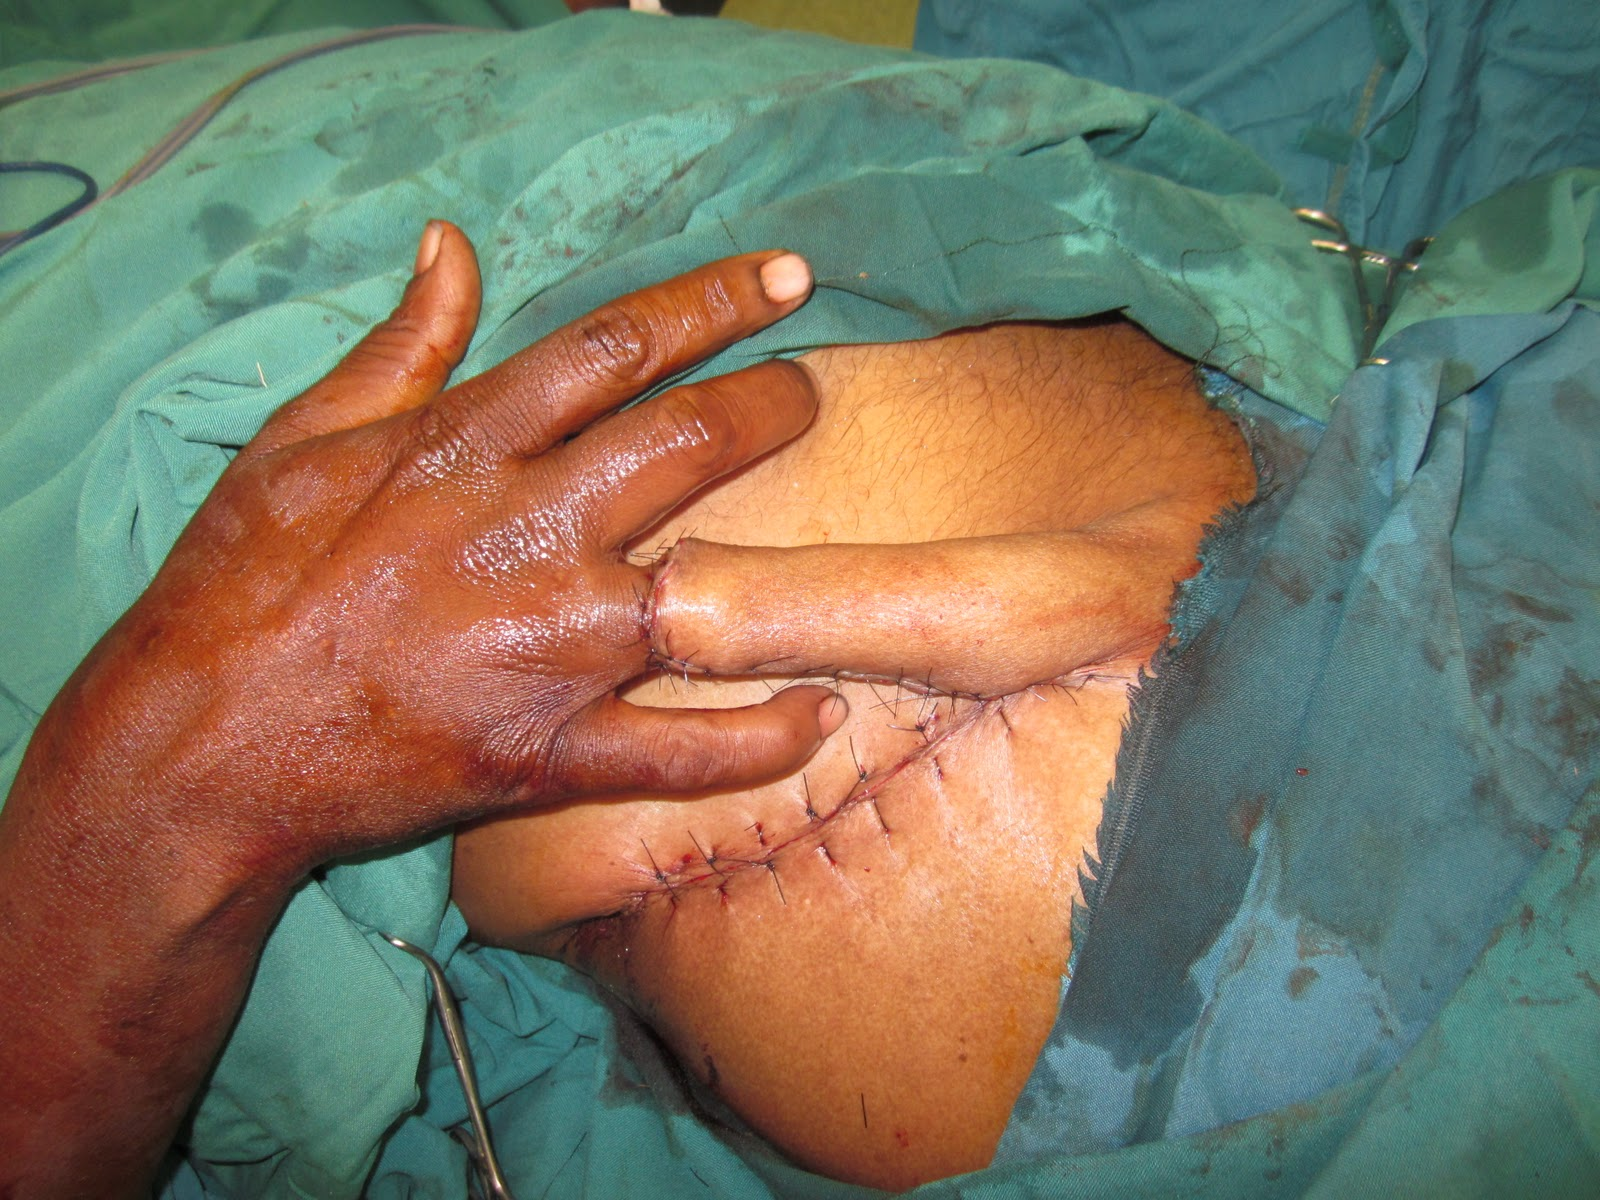 Ring avulsion injury right ring finger groin flap coverage hand